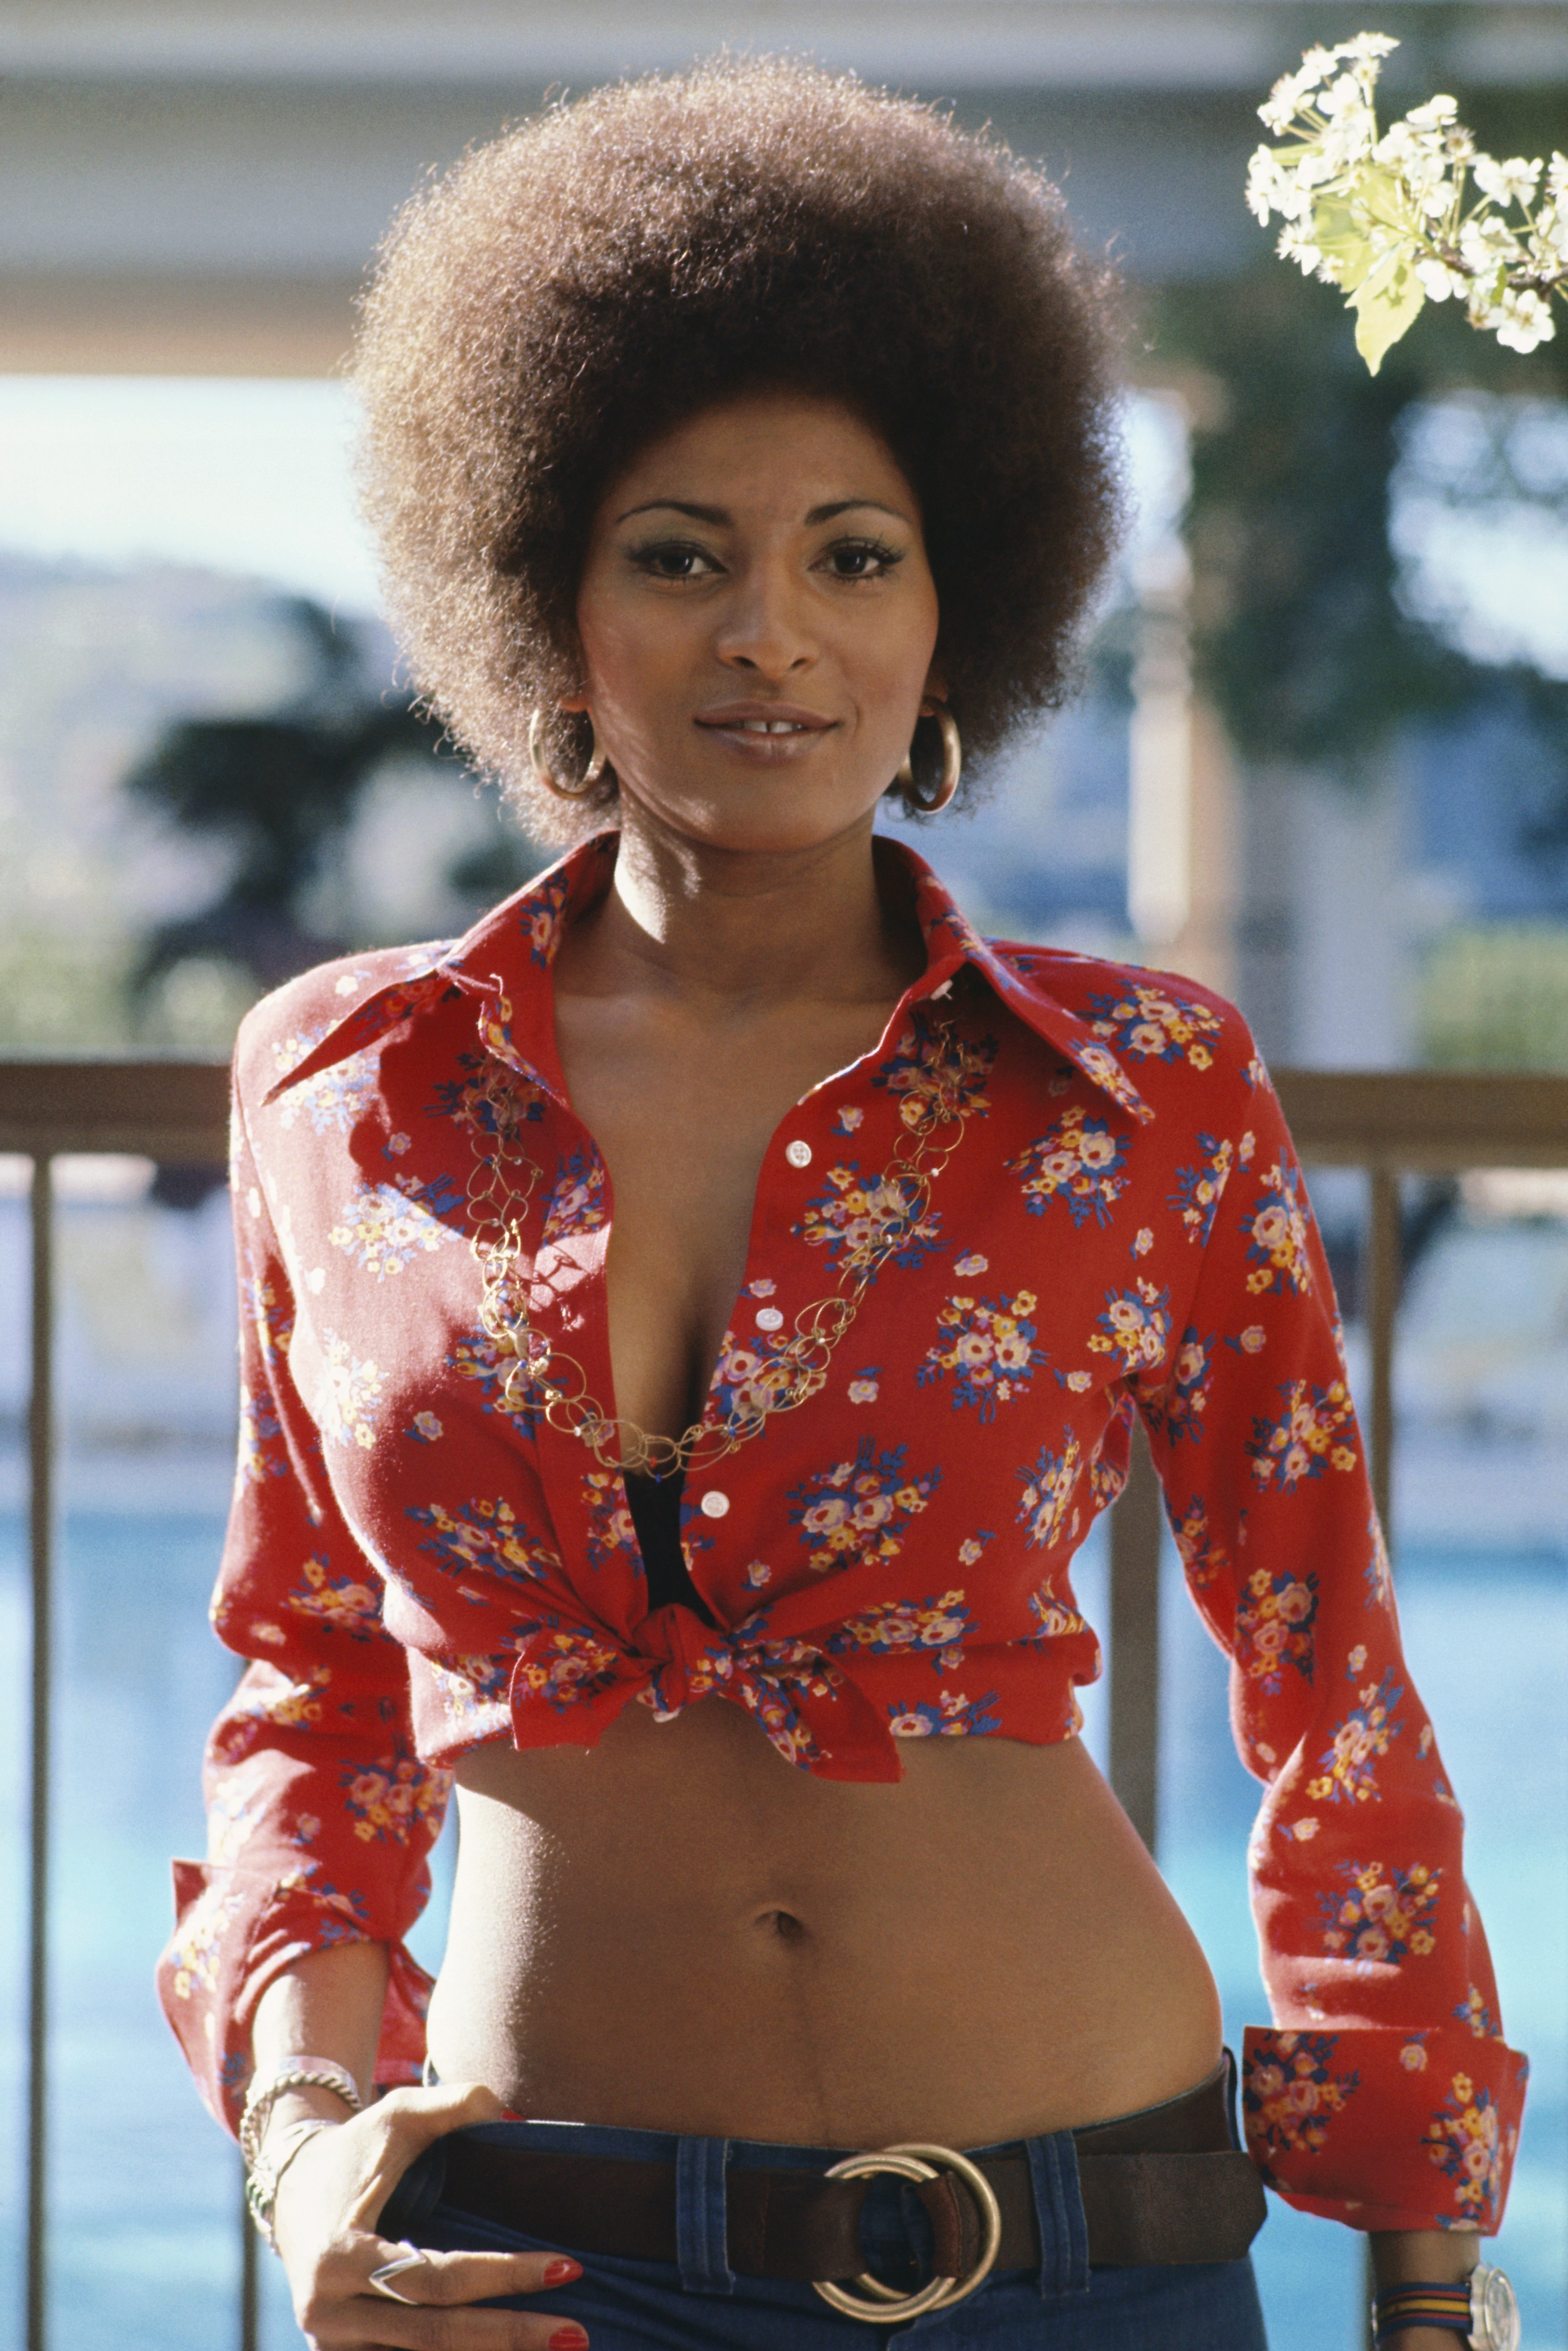 Bikini Pam Grier naked (92 foto and video), Ass, Hot, Boobs, legs 2015